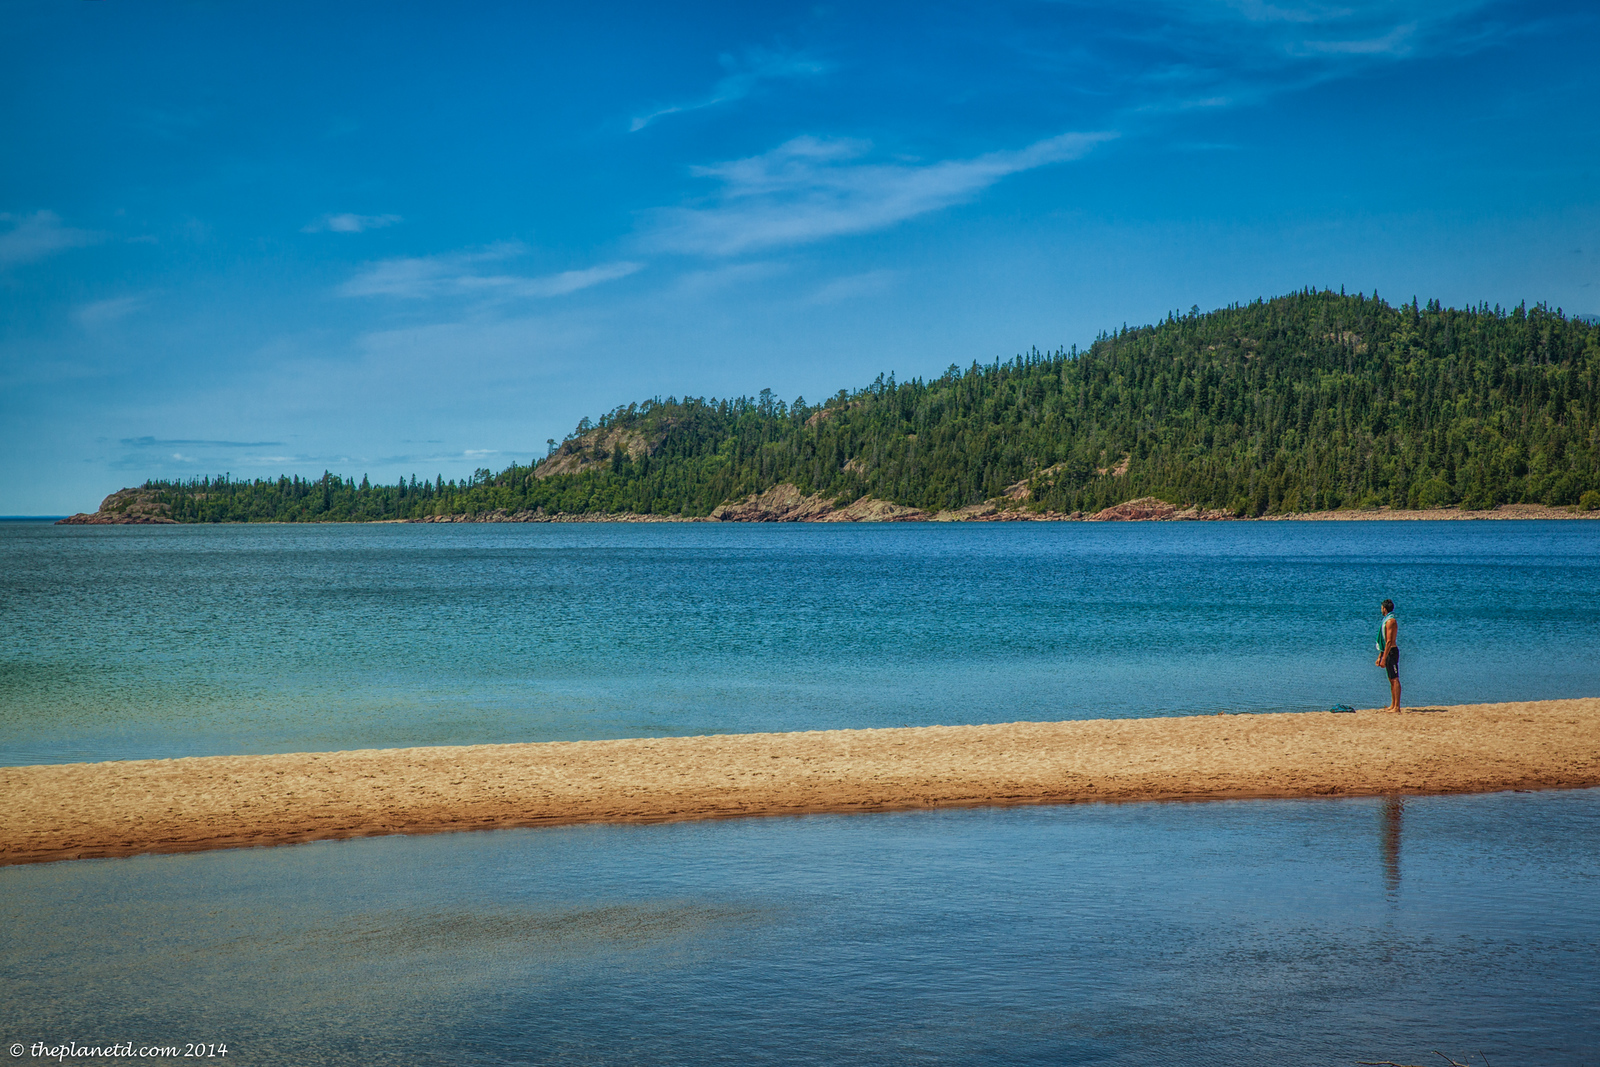 Beach time on the North Shore of Lake Superior.